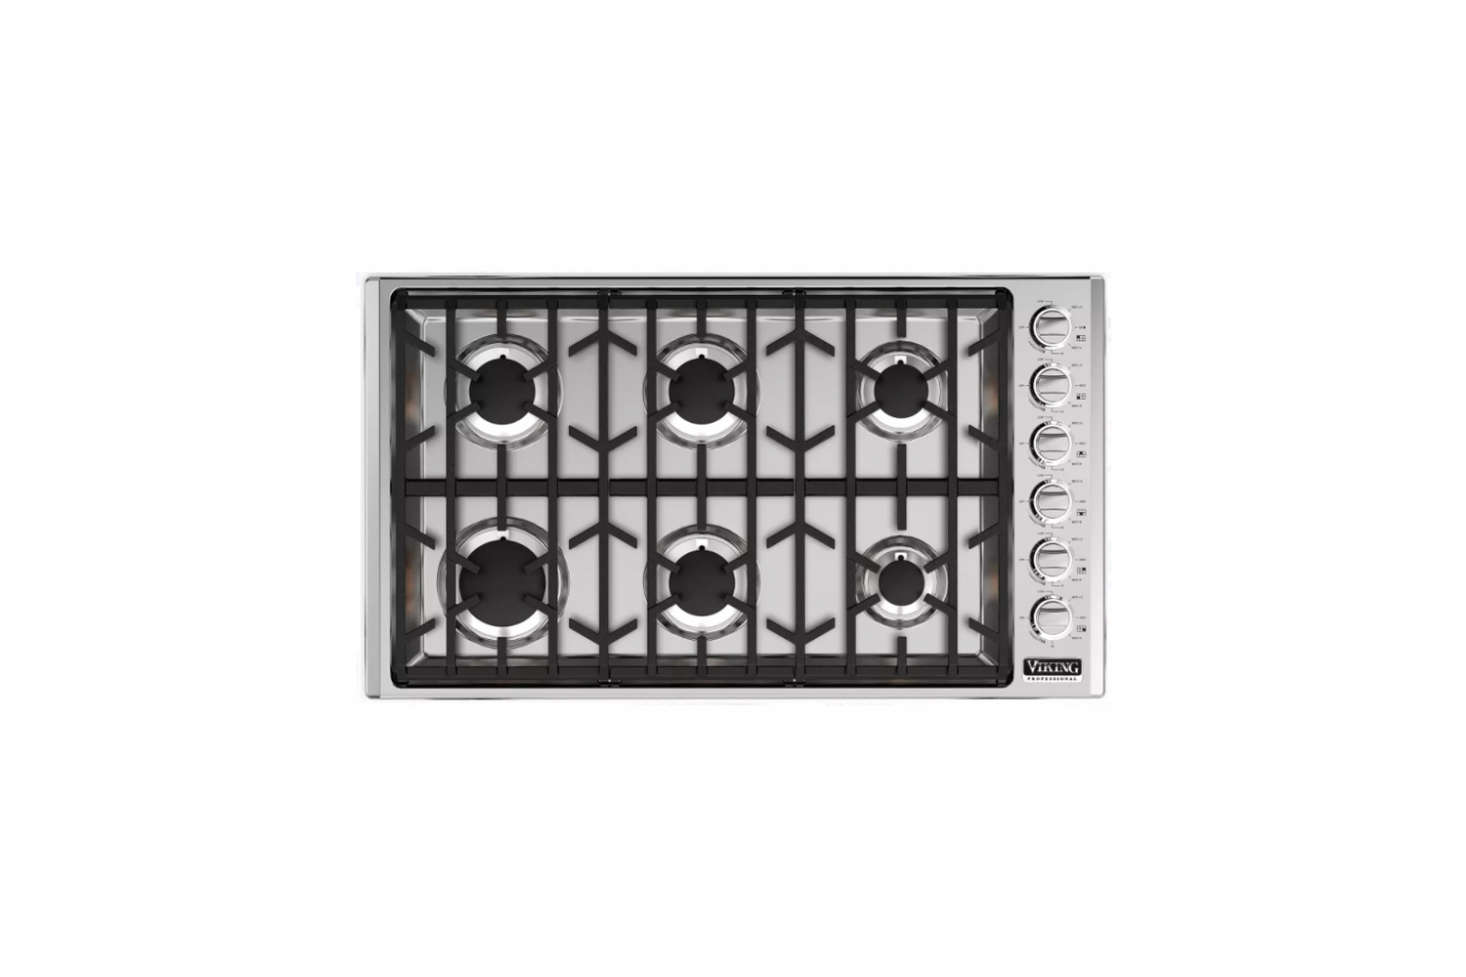 The Viking Professional 5 Series 36-Inch Gas Cooktop (VGSU5366BSS) at $src=